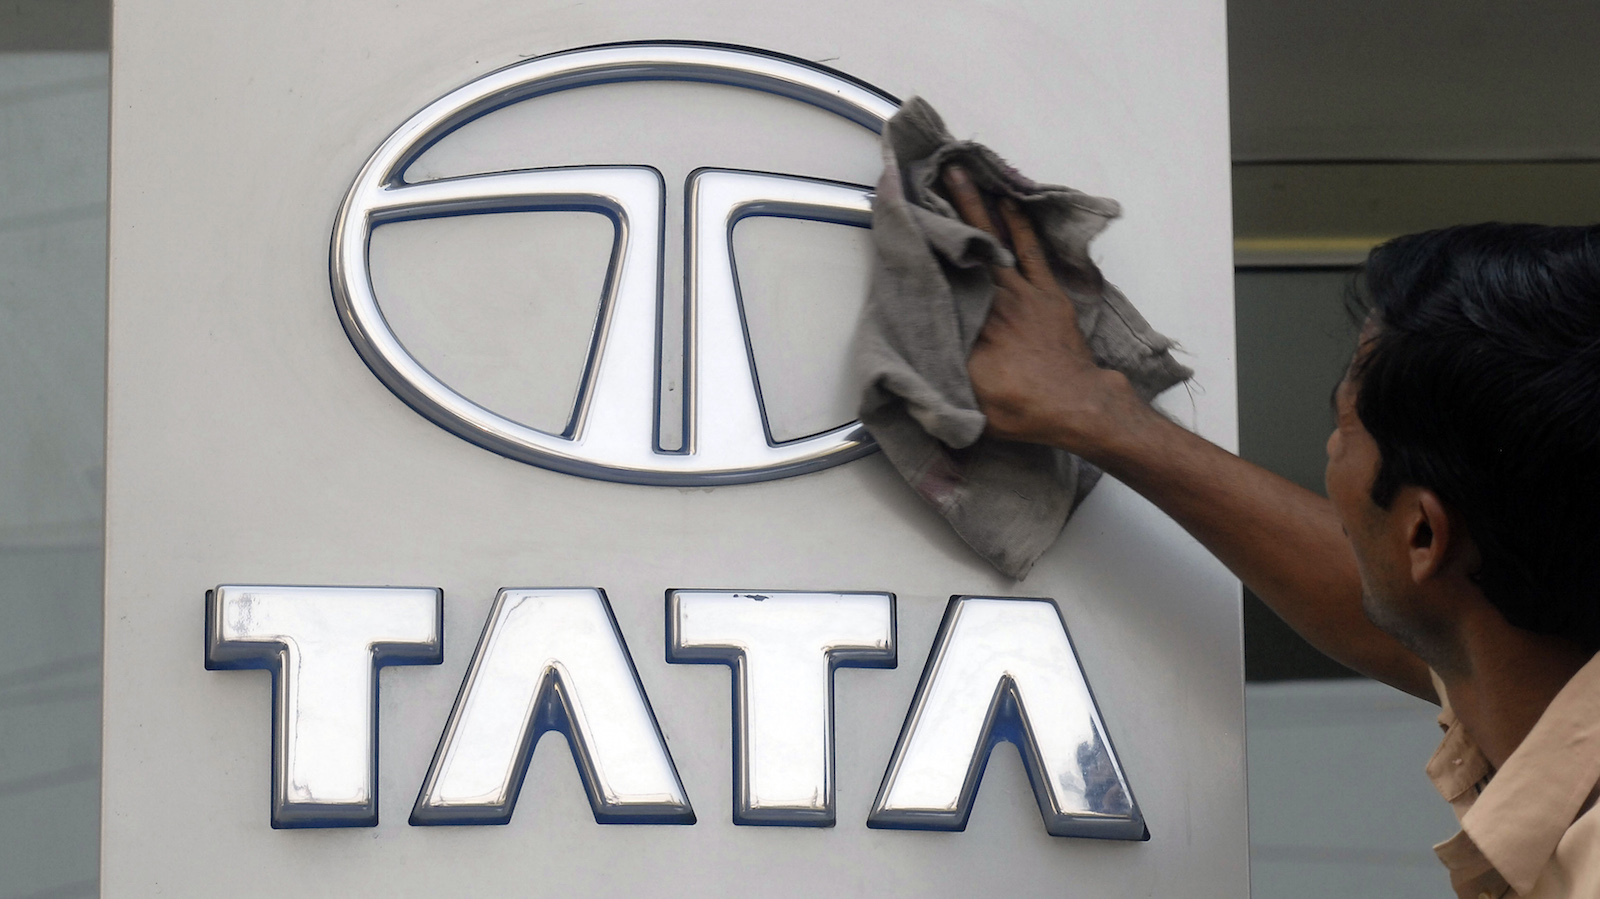 A worker cleans a Tata Motors logo outside its showroom in the southern Indian city of Hyderabad October 26, 2009. Tata Motors Ltd, India's largest vehicle maker, reported a sharp jump in quarterly net profit, beating forecasts, on improved margins from lower input prices, recovery in volumes and aided by lower foreign exchange losses.